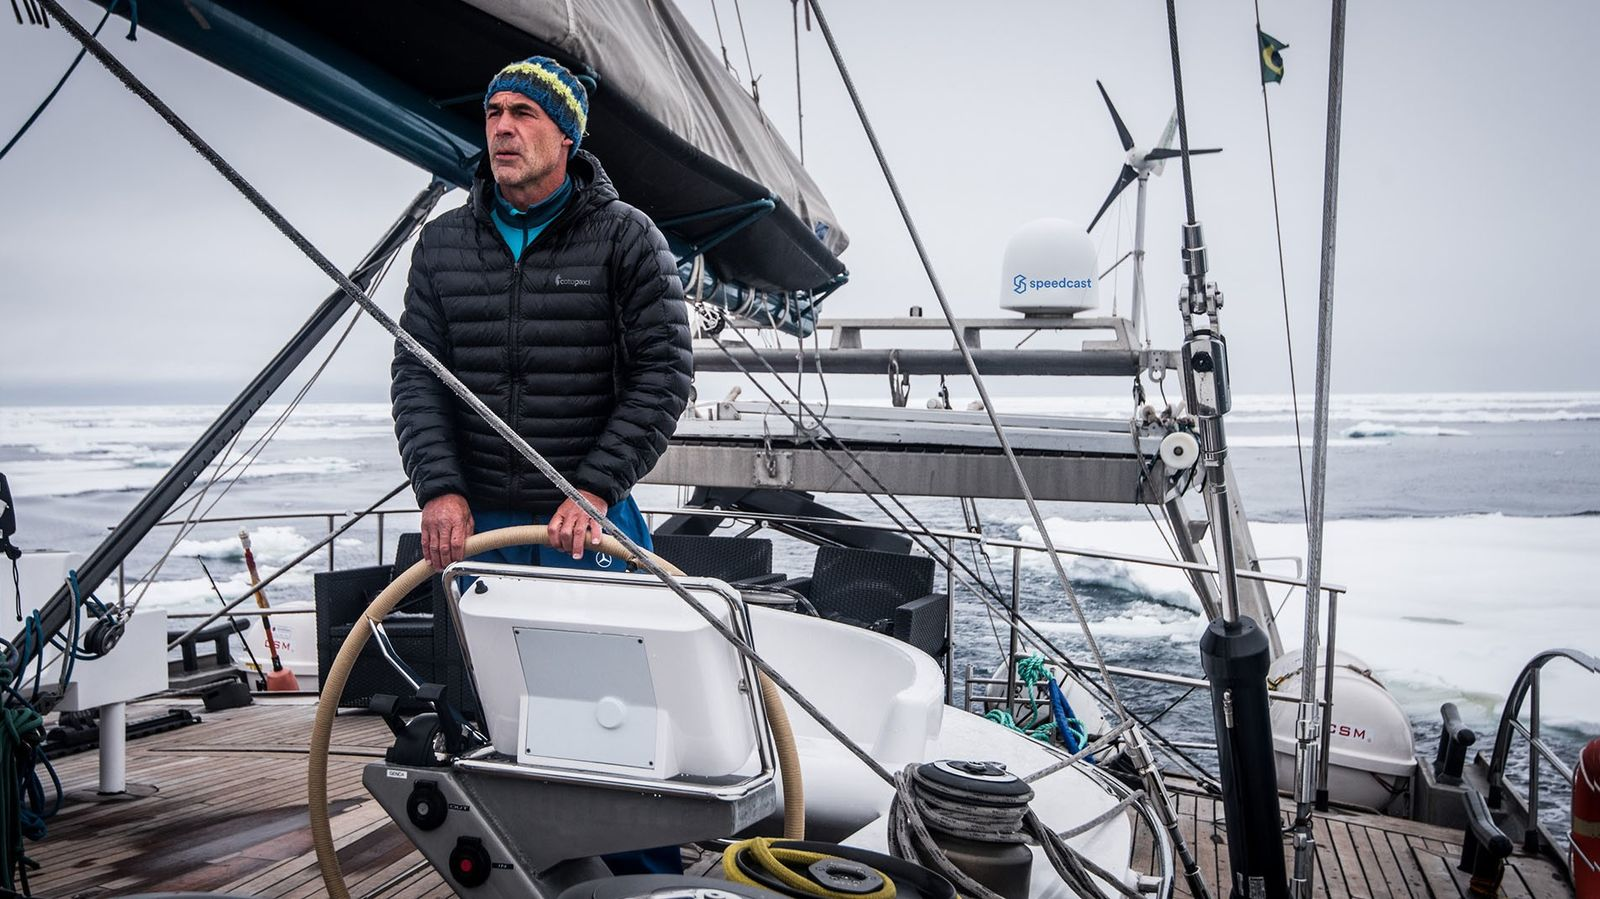 Meet the adventurer: Mike Horn on risk, polar challenges and caring for the planet